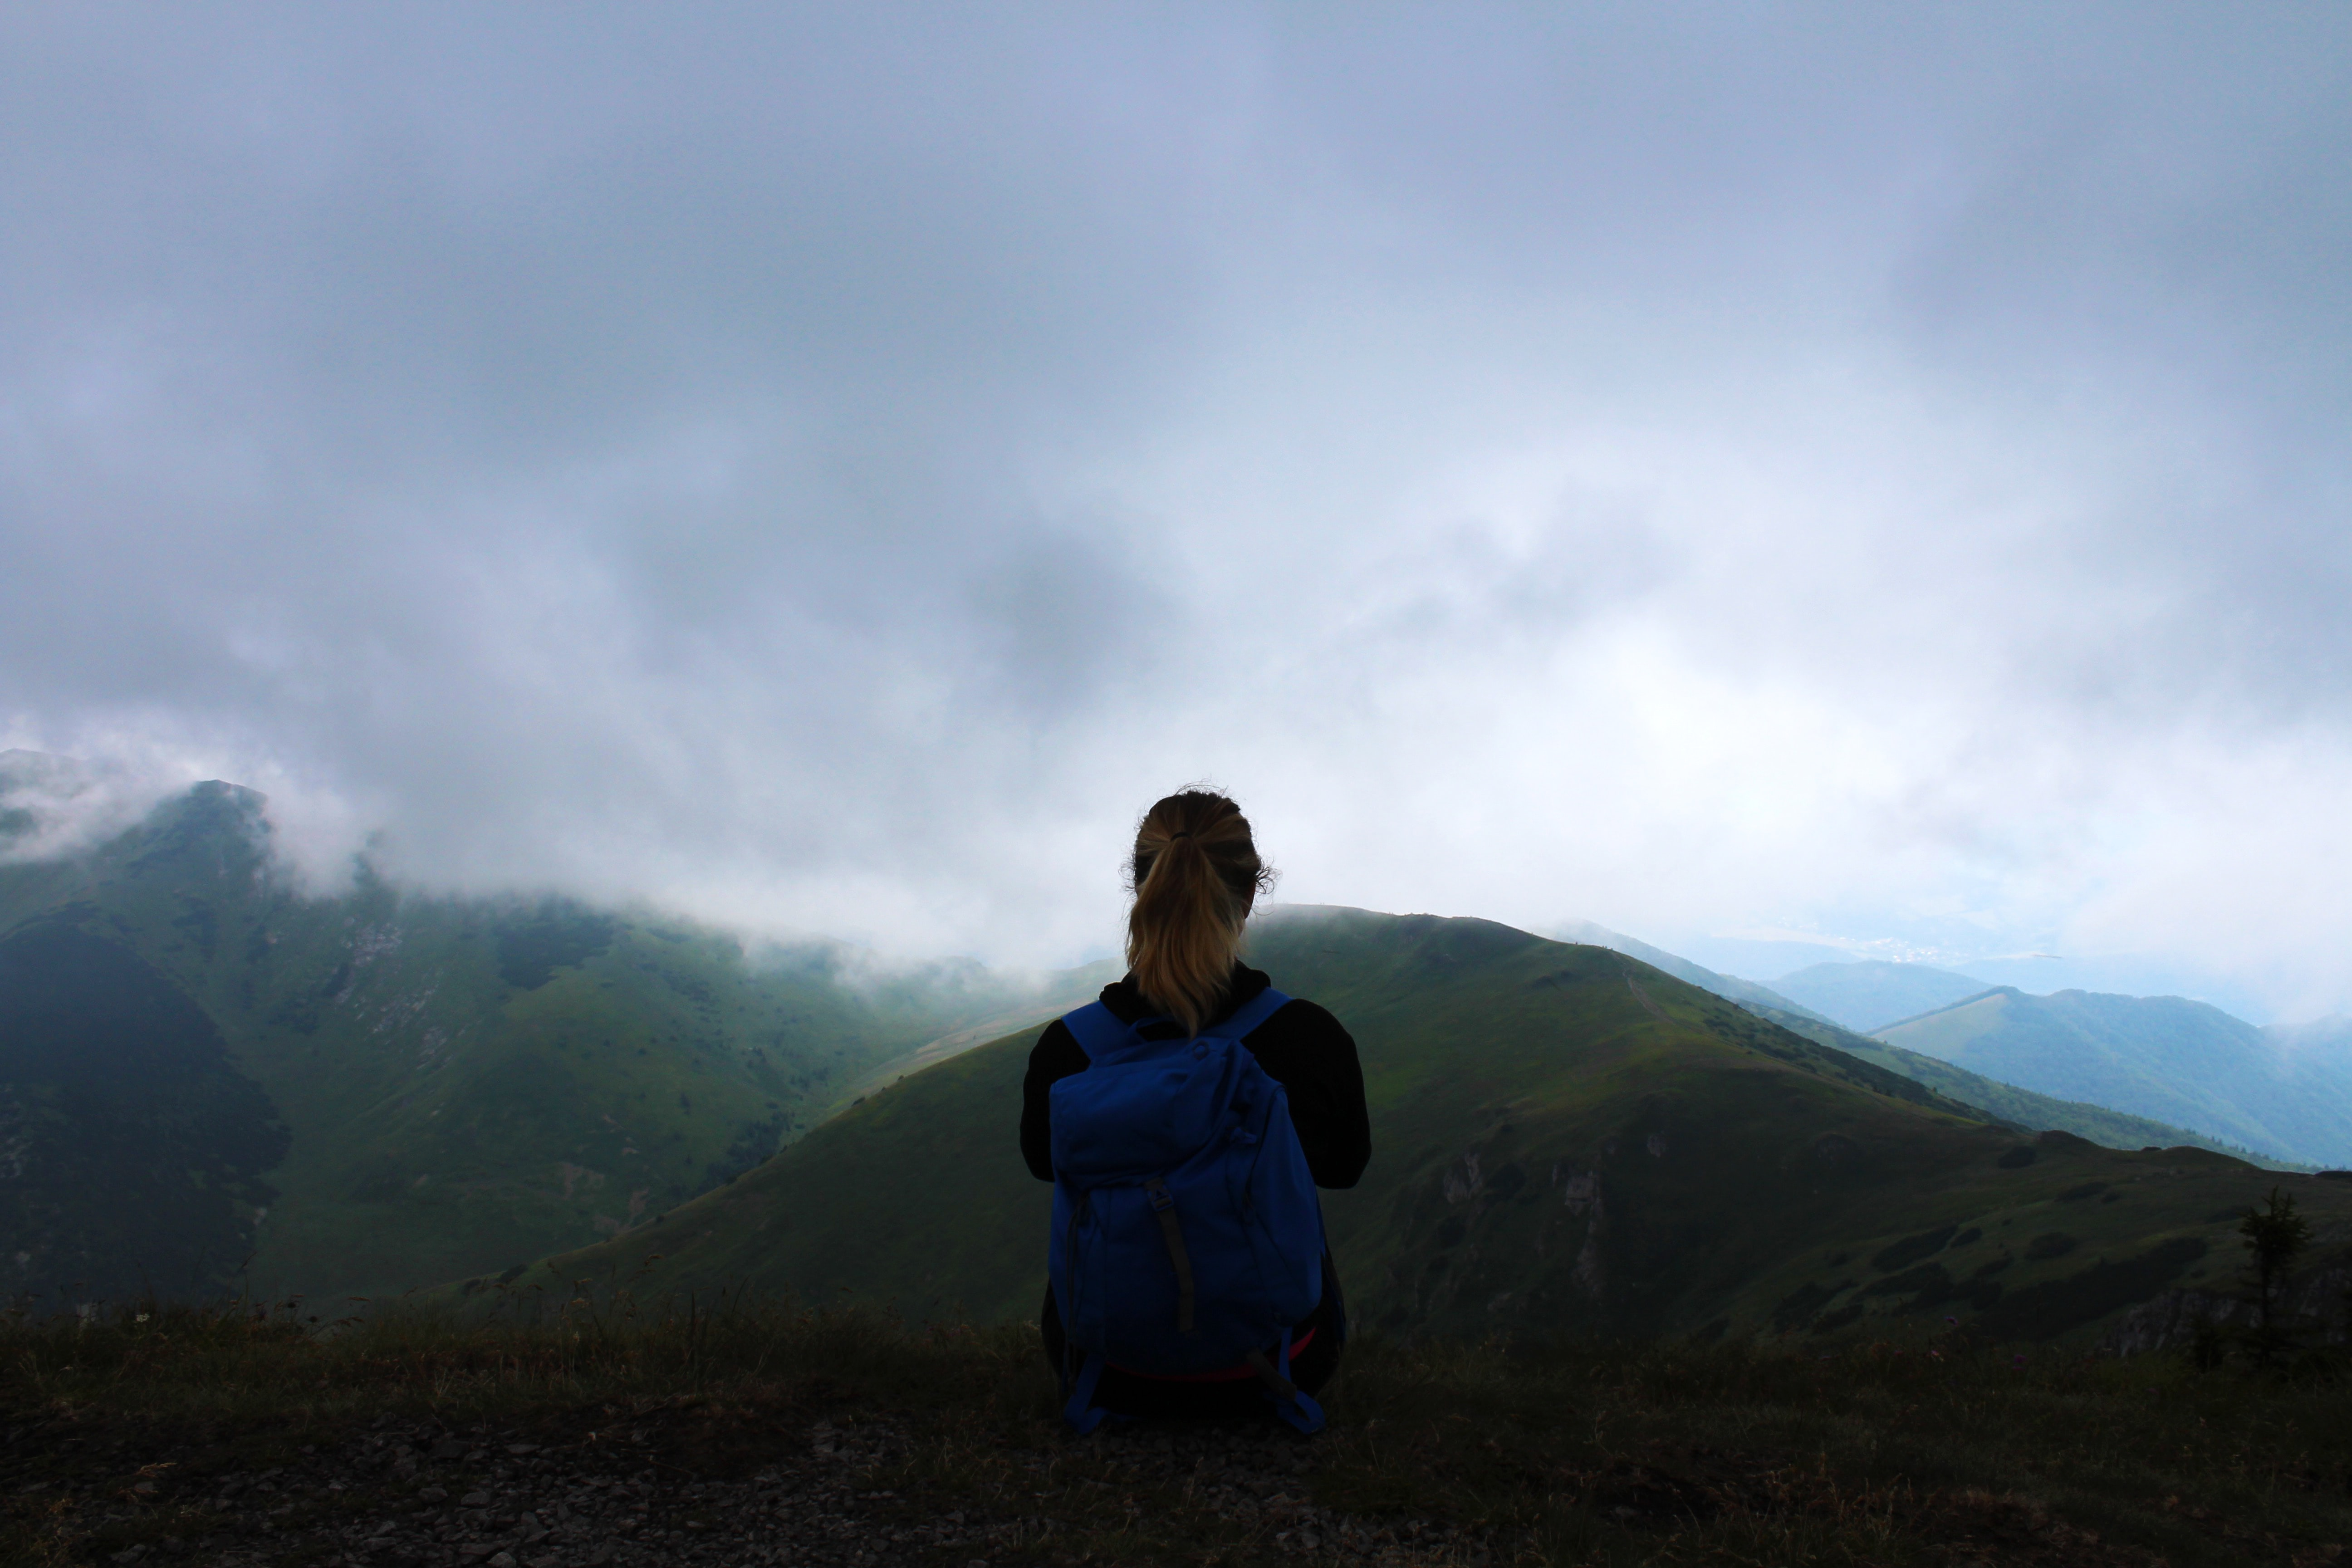 woman facing mountain with sea of clouds